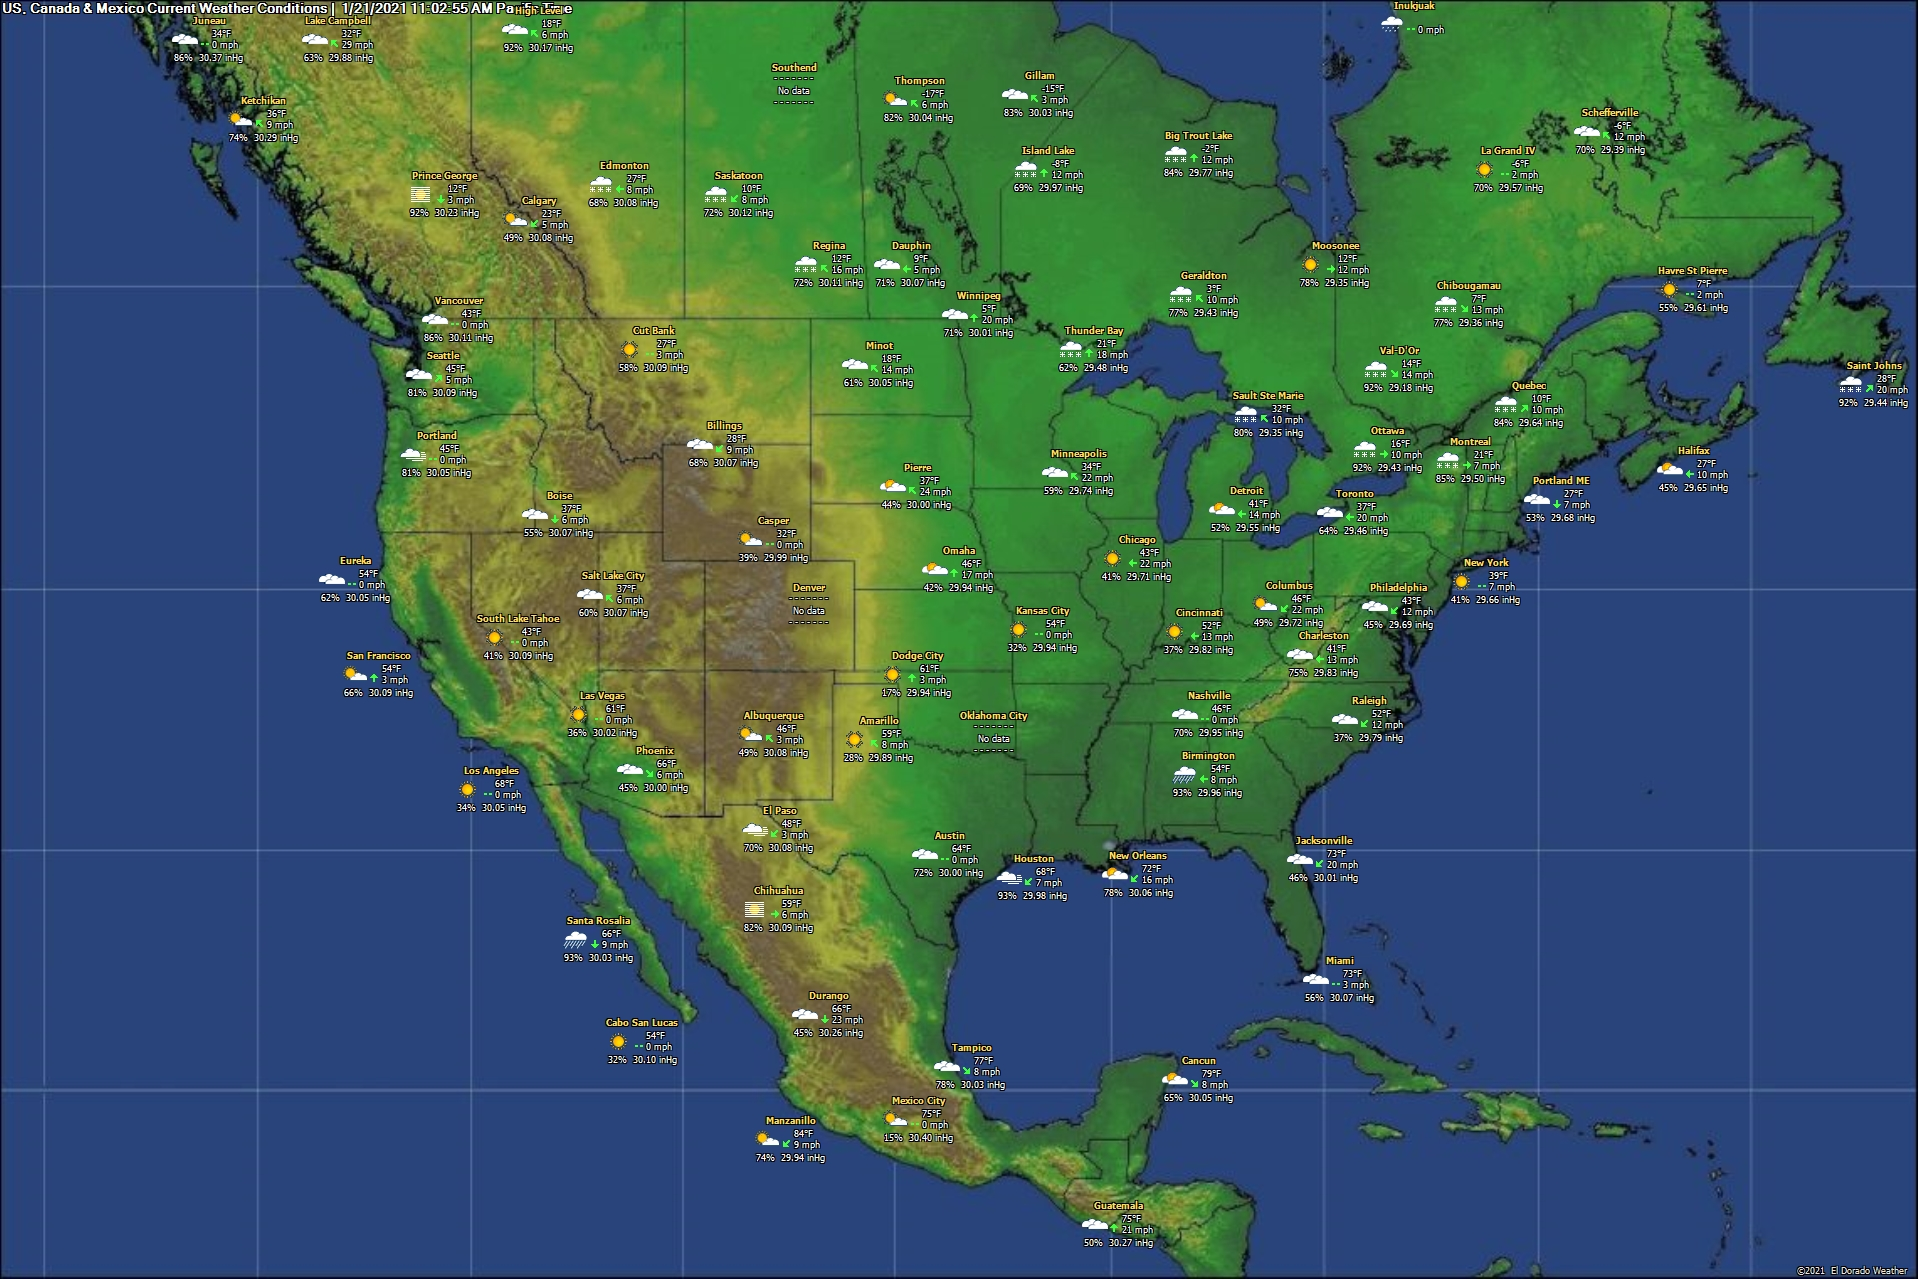 Current Weather Map Of United States.United States Canada Mexico Current Weather Conditions